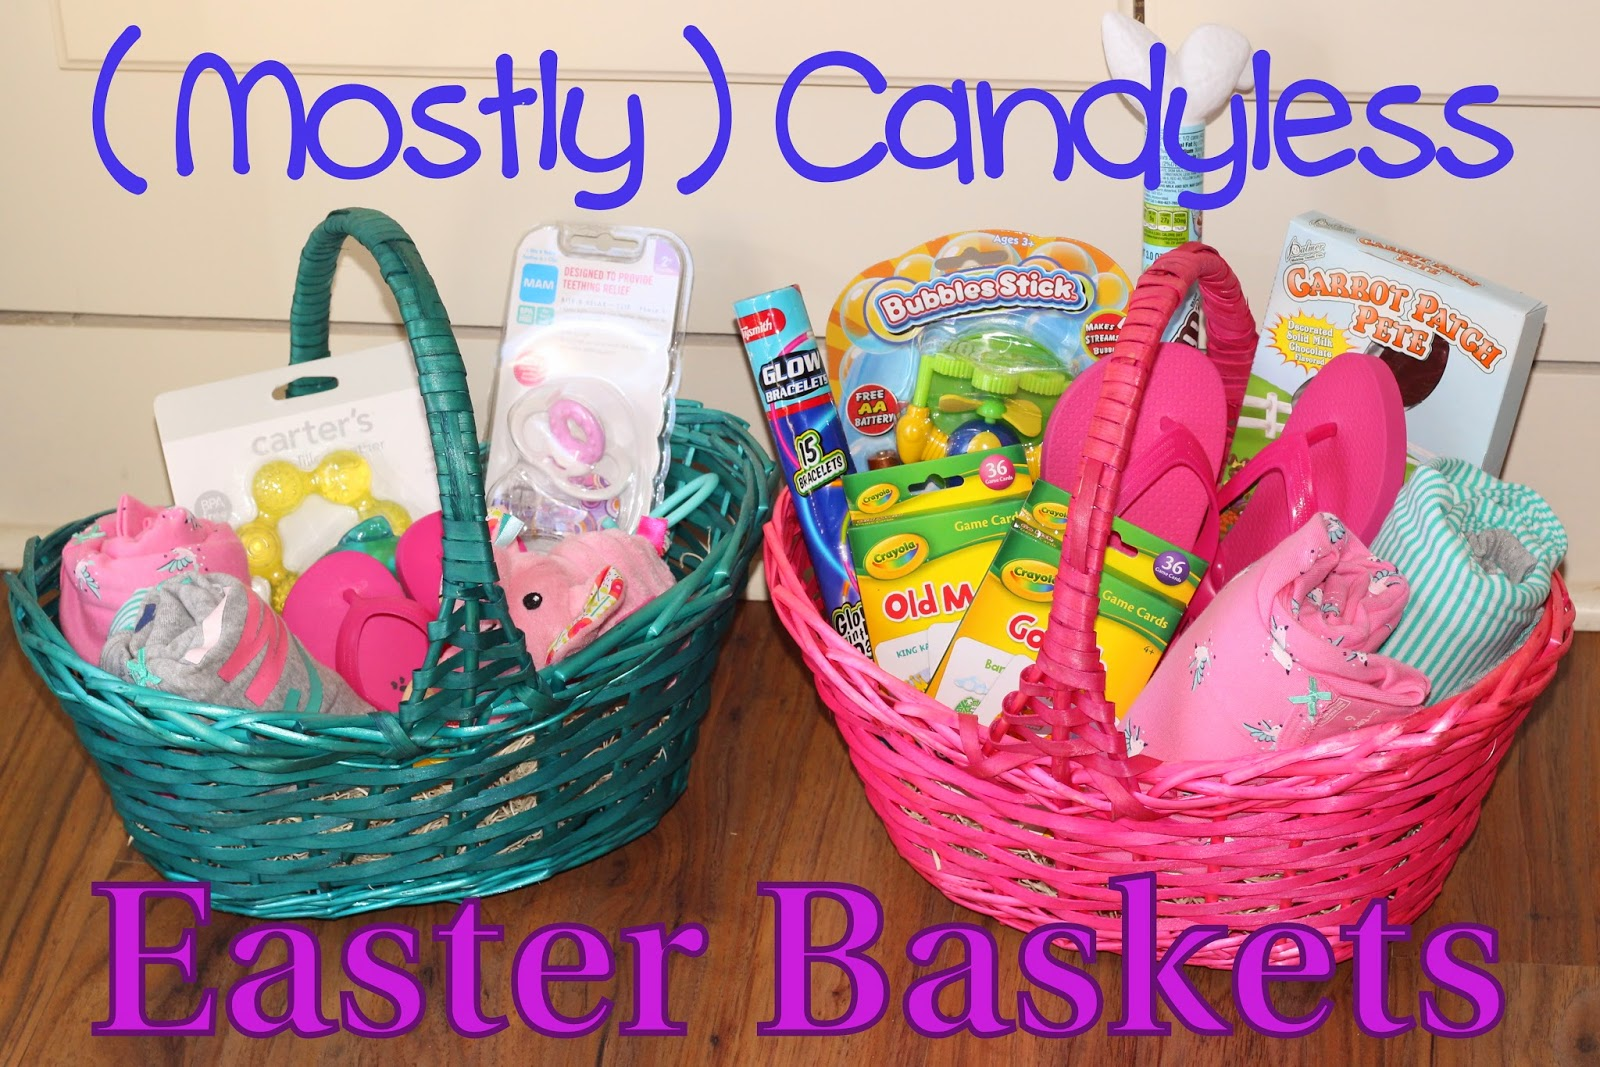 Ha Pretty Easy Plus Kate S Had To Be Pink If She Got A Non Basket I Think The Easter Bunny Would Have Been In Trouble